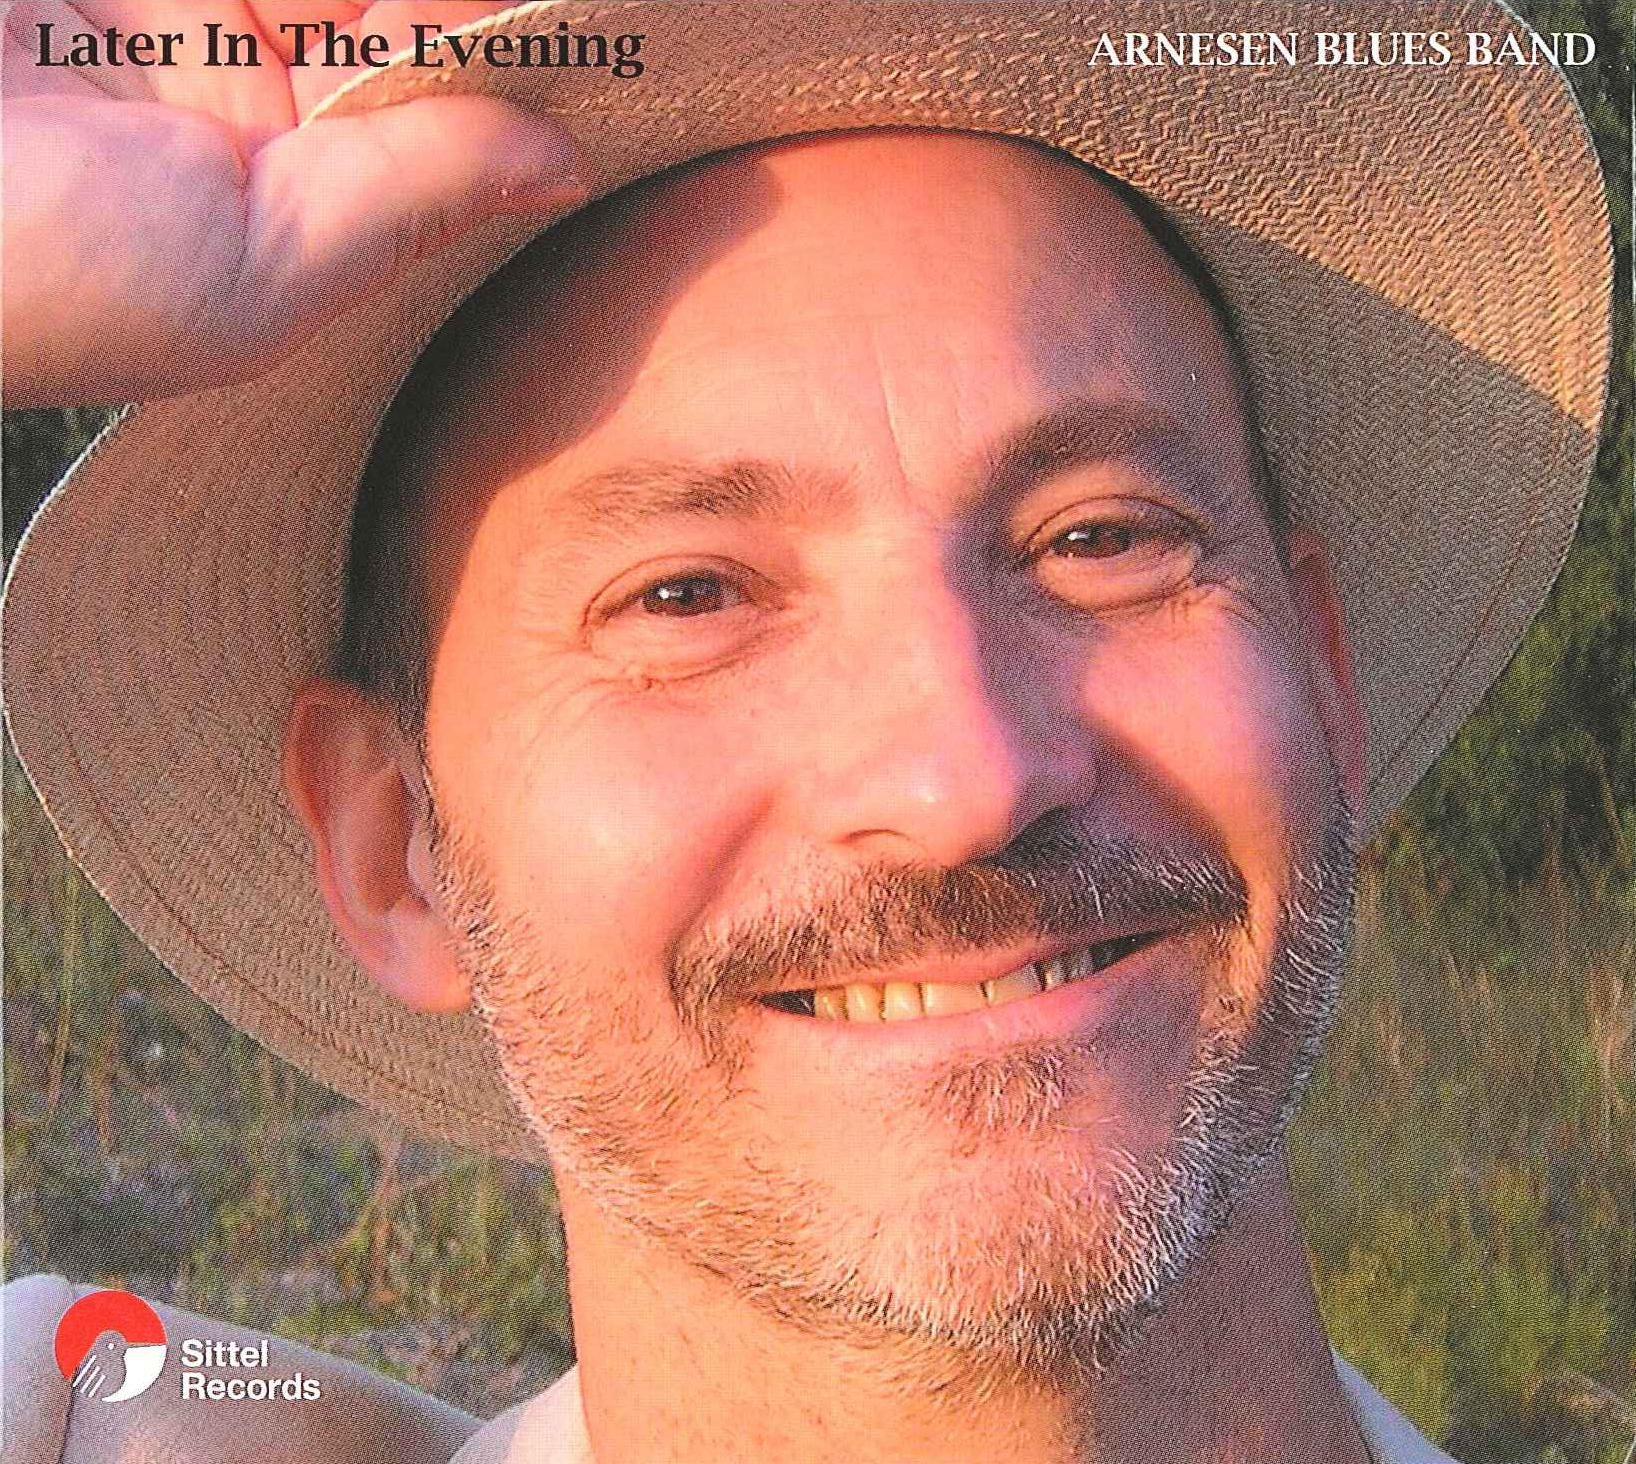 Arnesen Blues Band - Later In The Evening (2003) [FLAC] Download